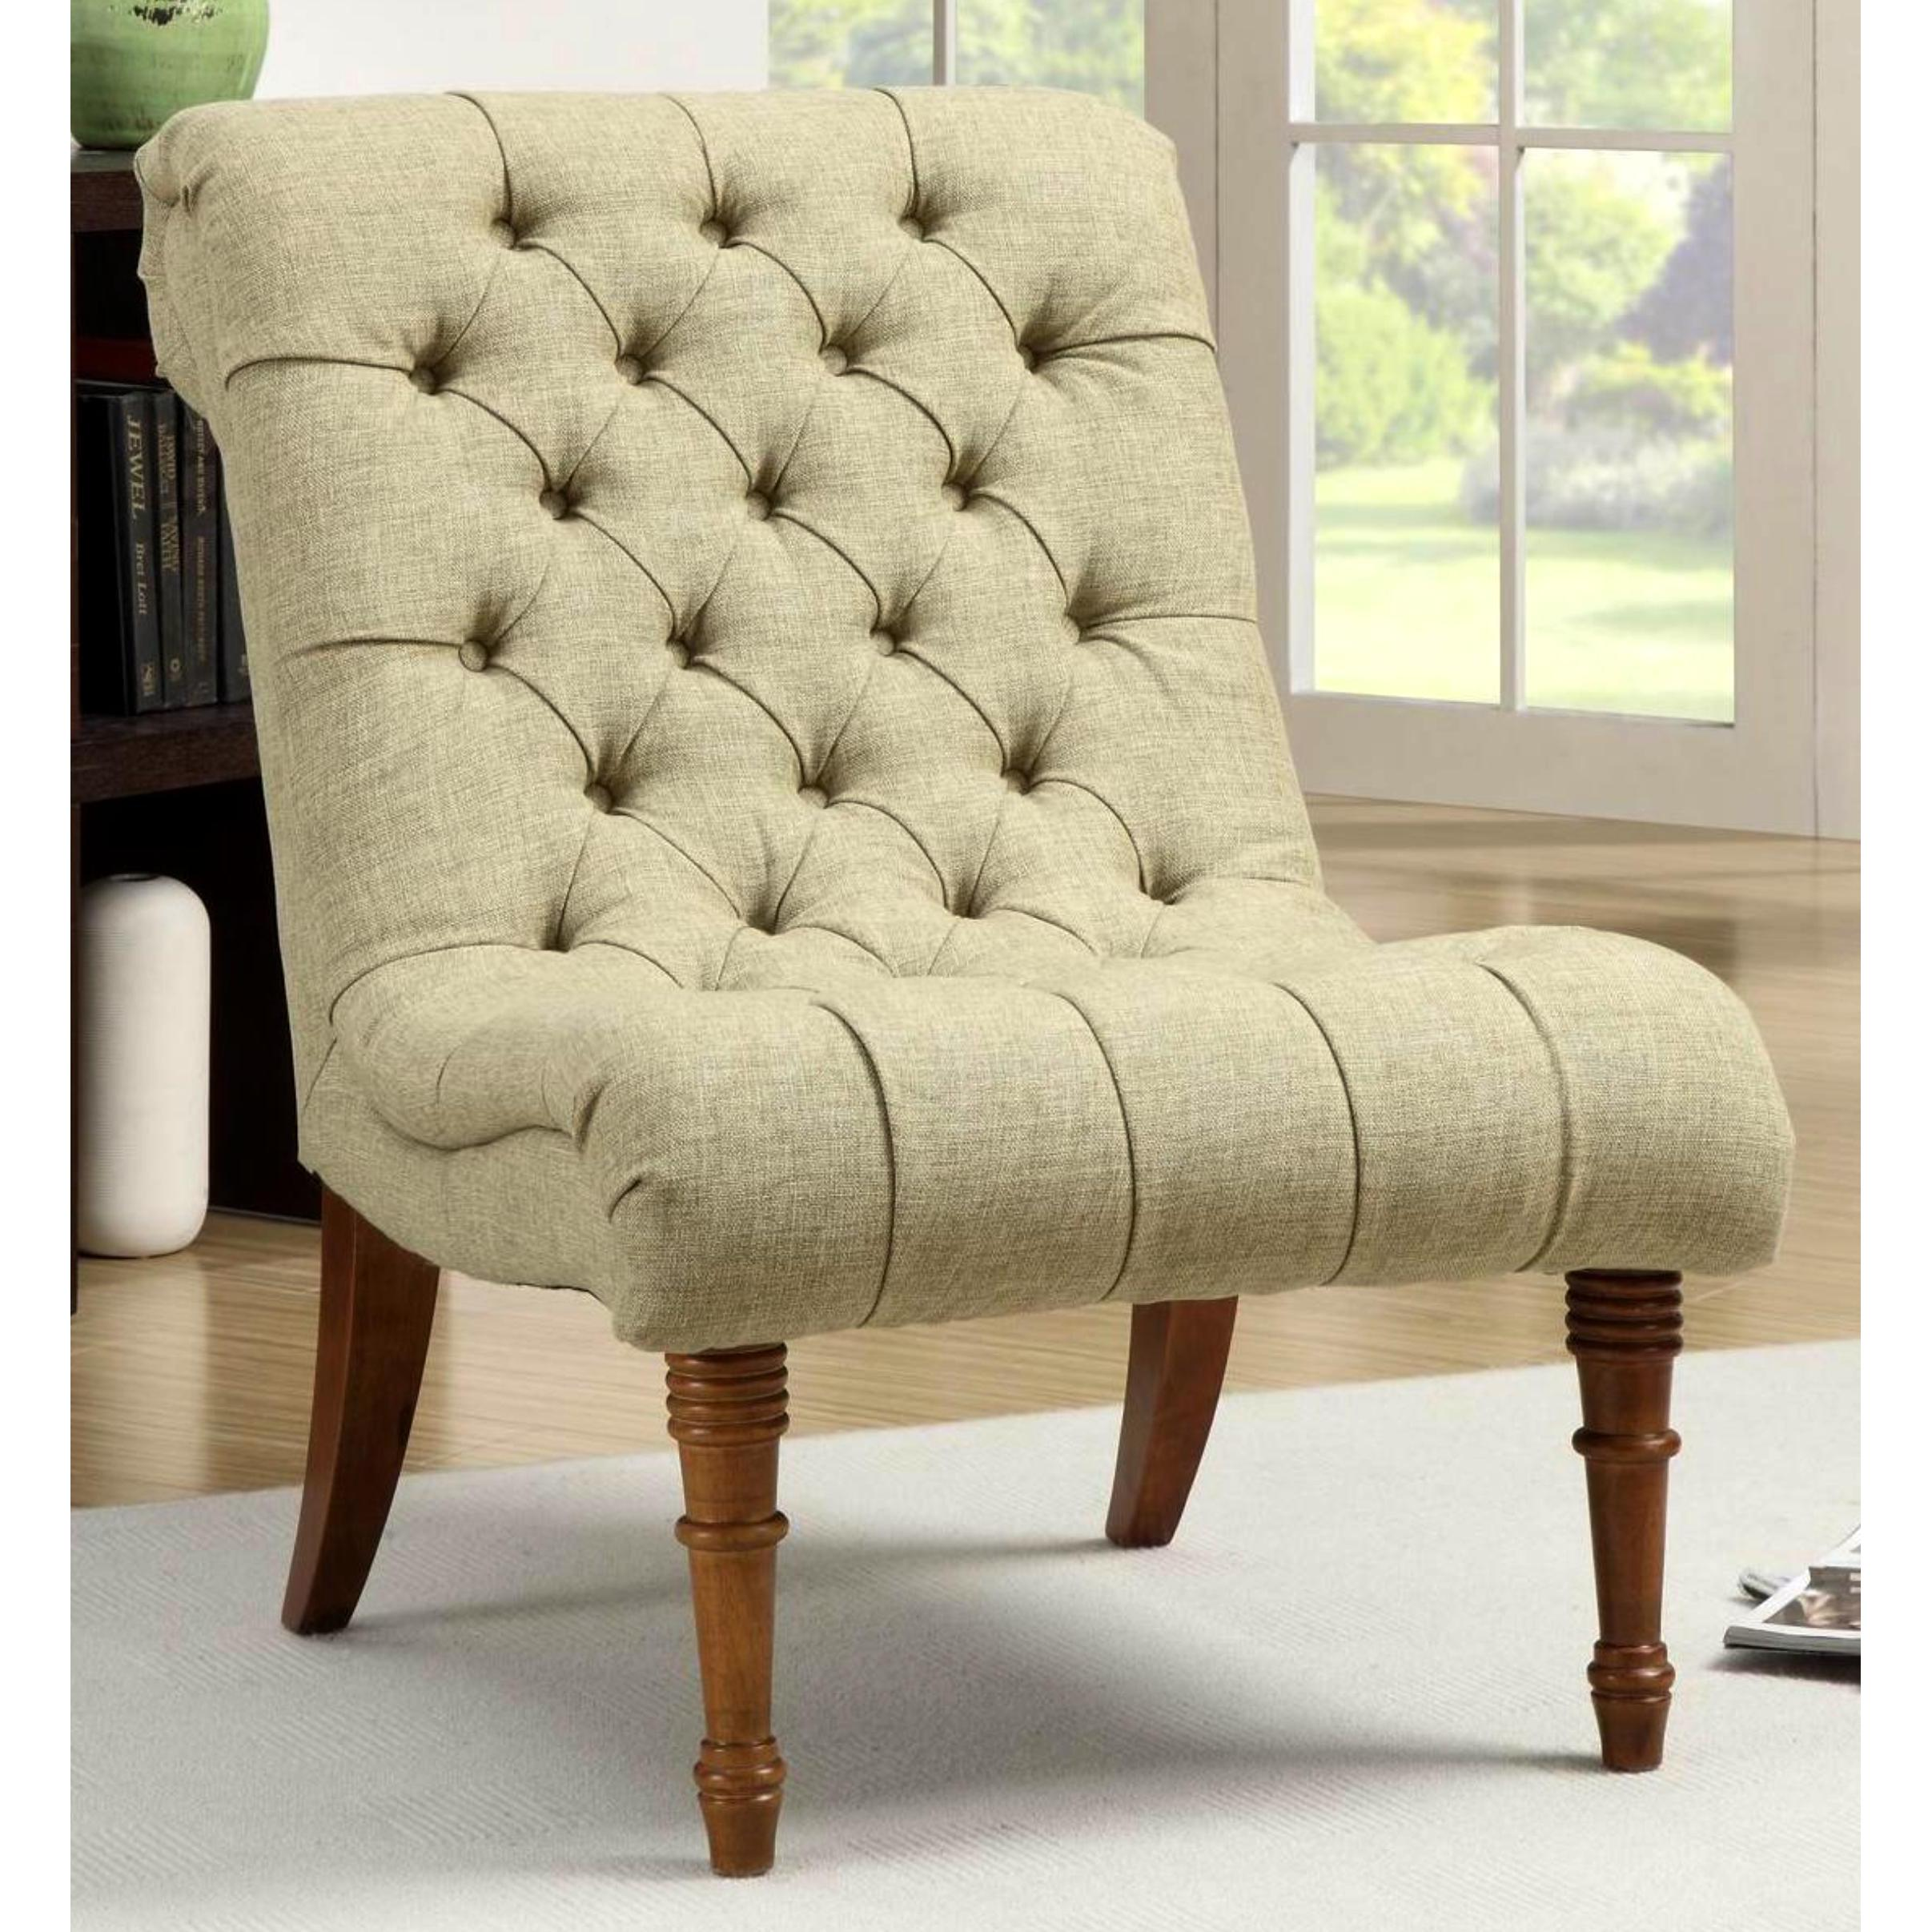 Classic Button Tufted Mossy Green Living Room Accent Chair - Free ...